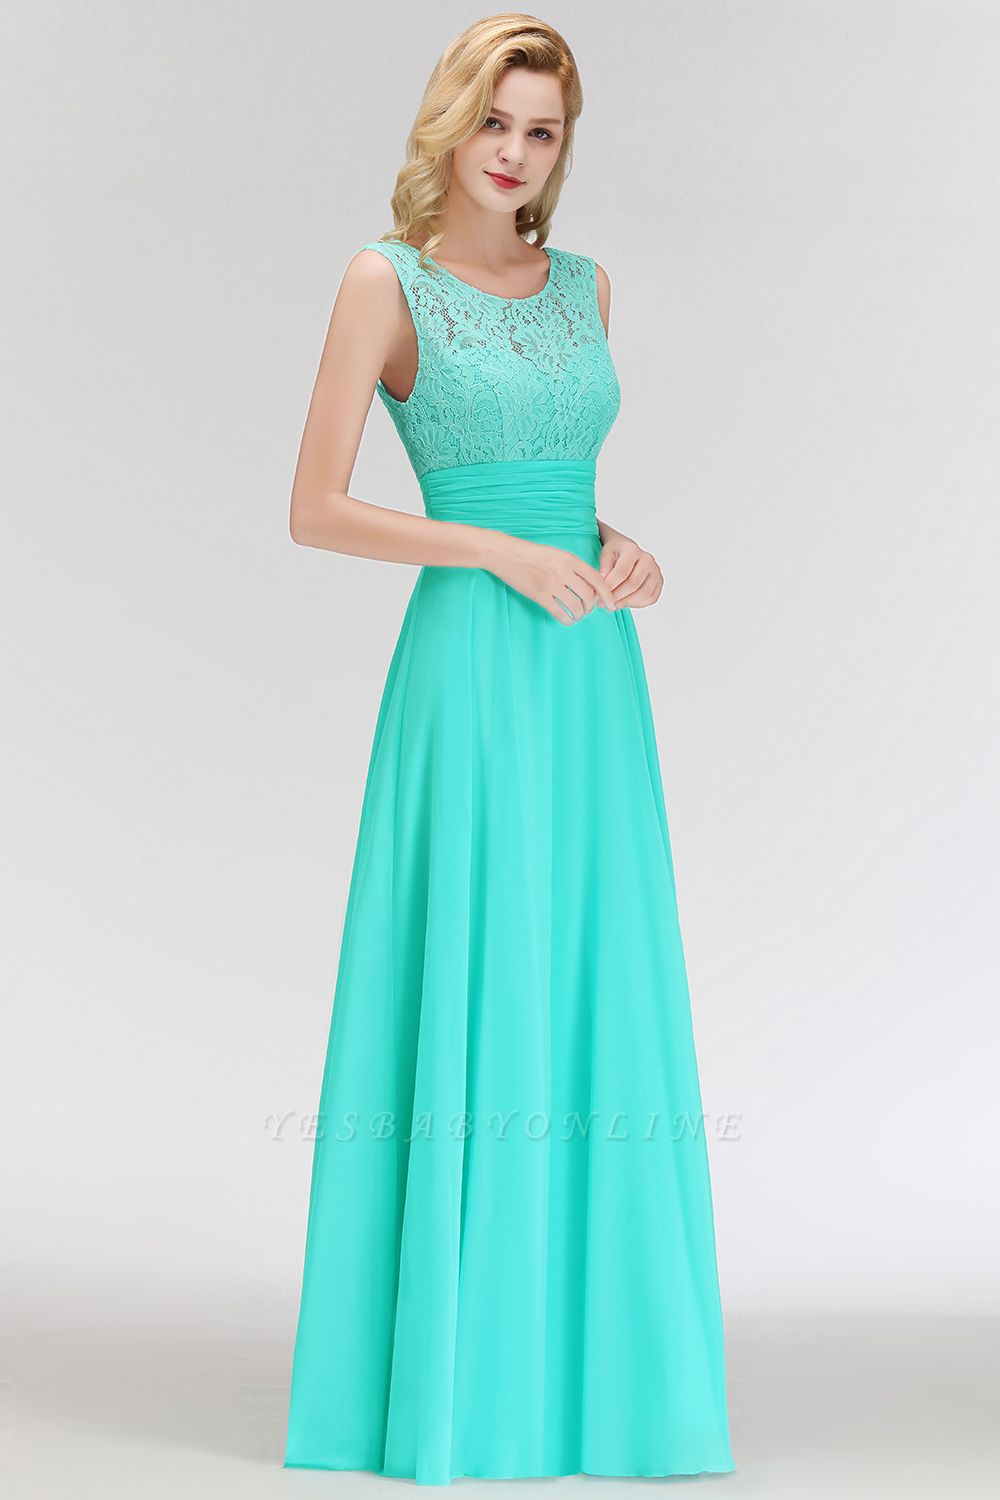 A-line Floor Length Lace Top Sleeveless Chiffon Bridesmaid Dress In Stock